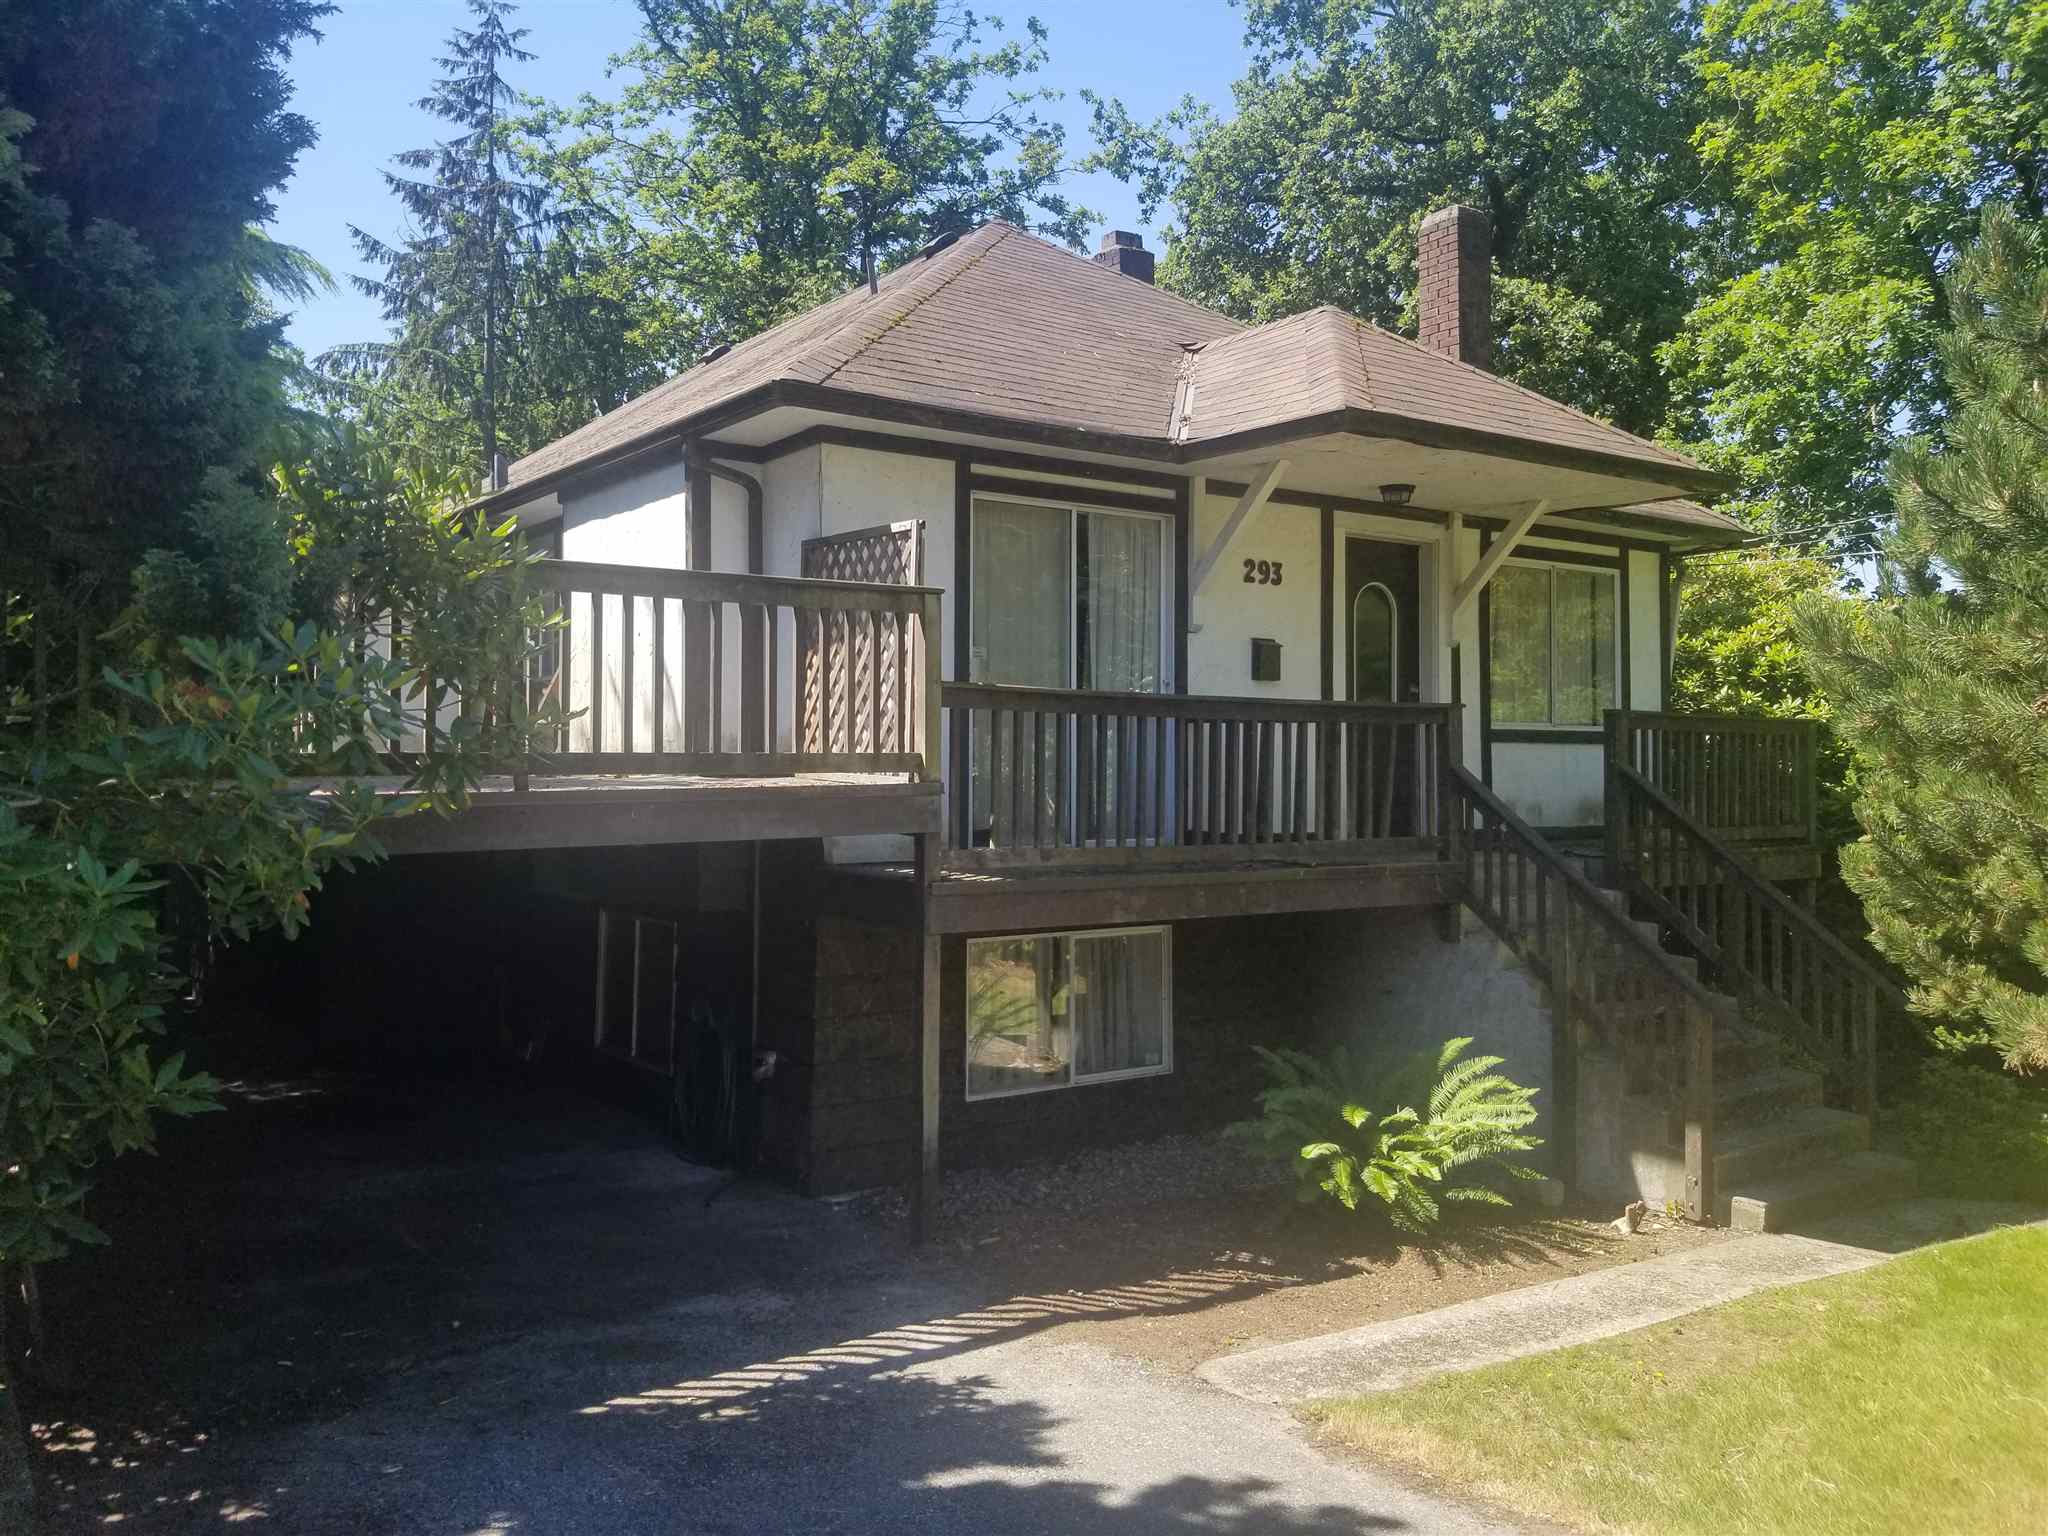 293 W WINDSOR ROAD - Upper Lonsdale House/Single Family for sale, 3 Bedrooms (R2571088) - #1